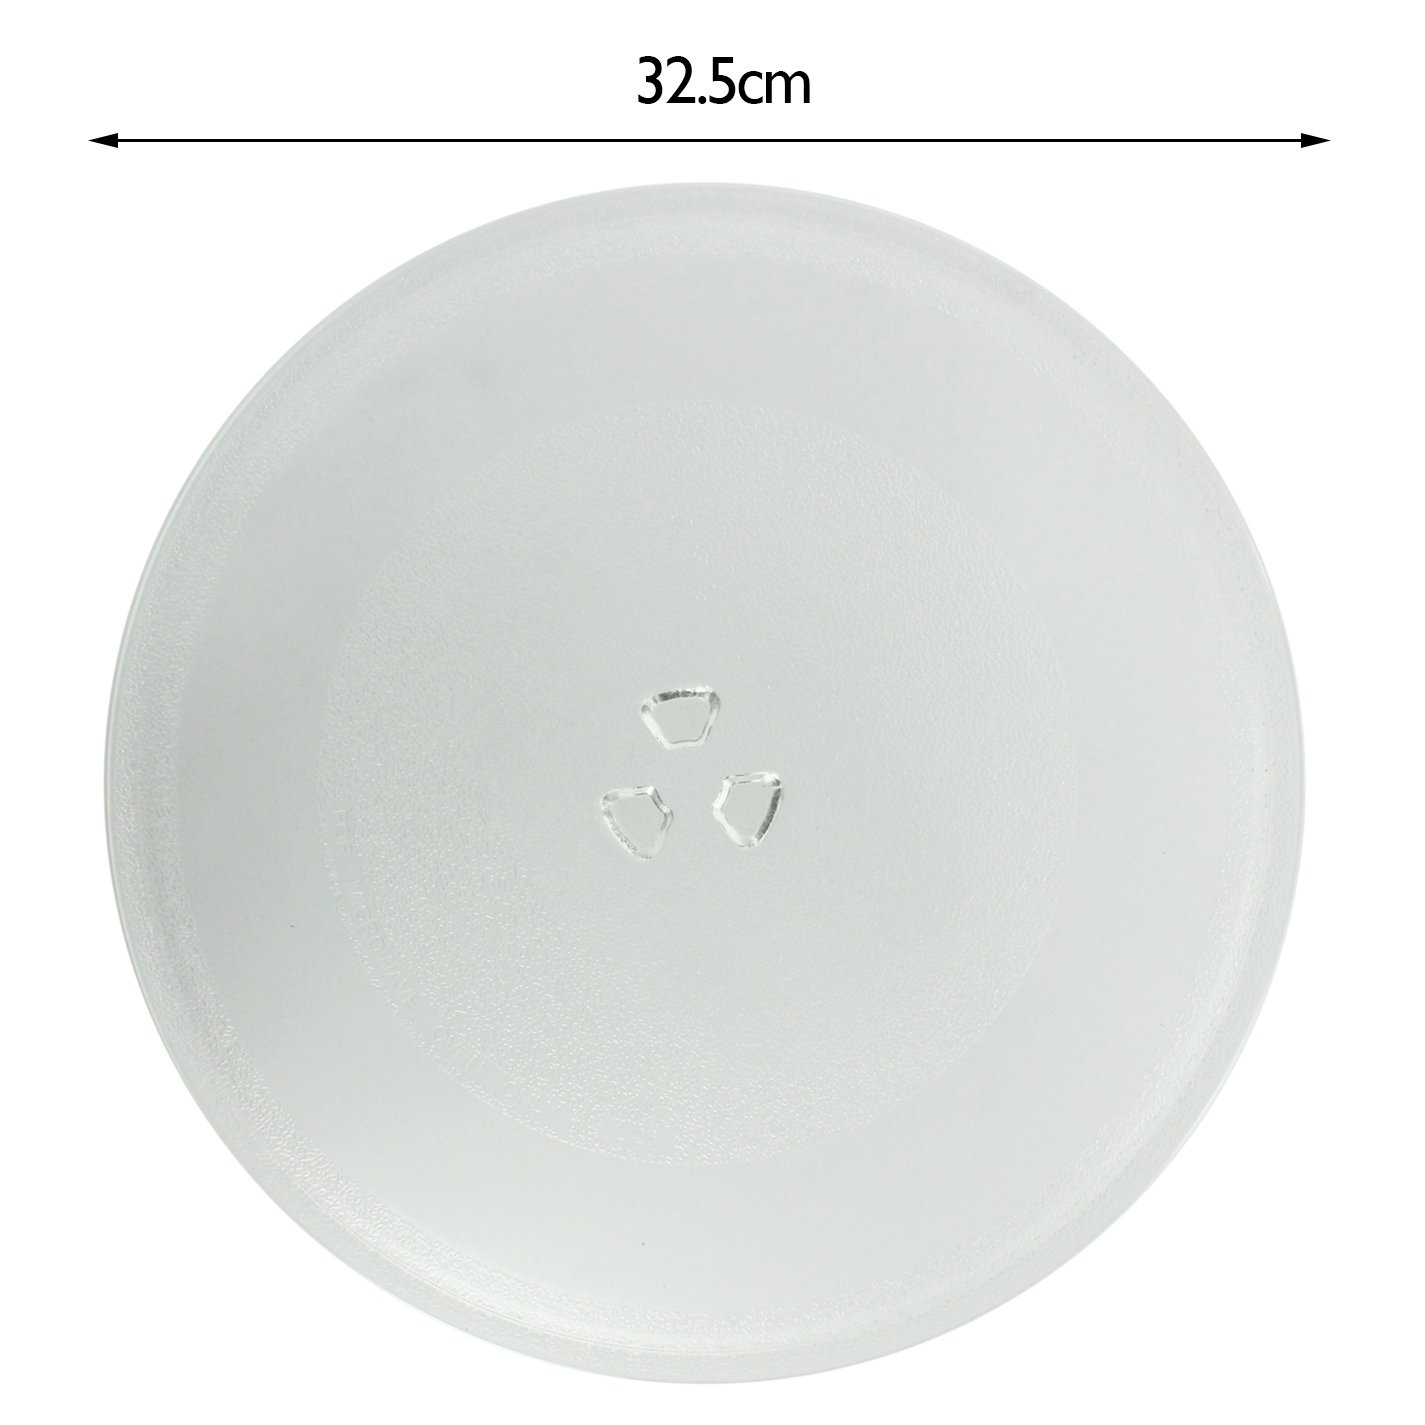 SPARES2GO Glass Turntable Plate Dish (325mm) for Delonghi Microwave Oven